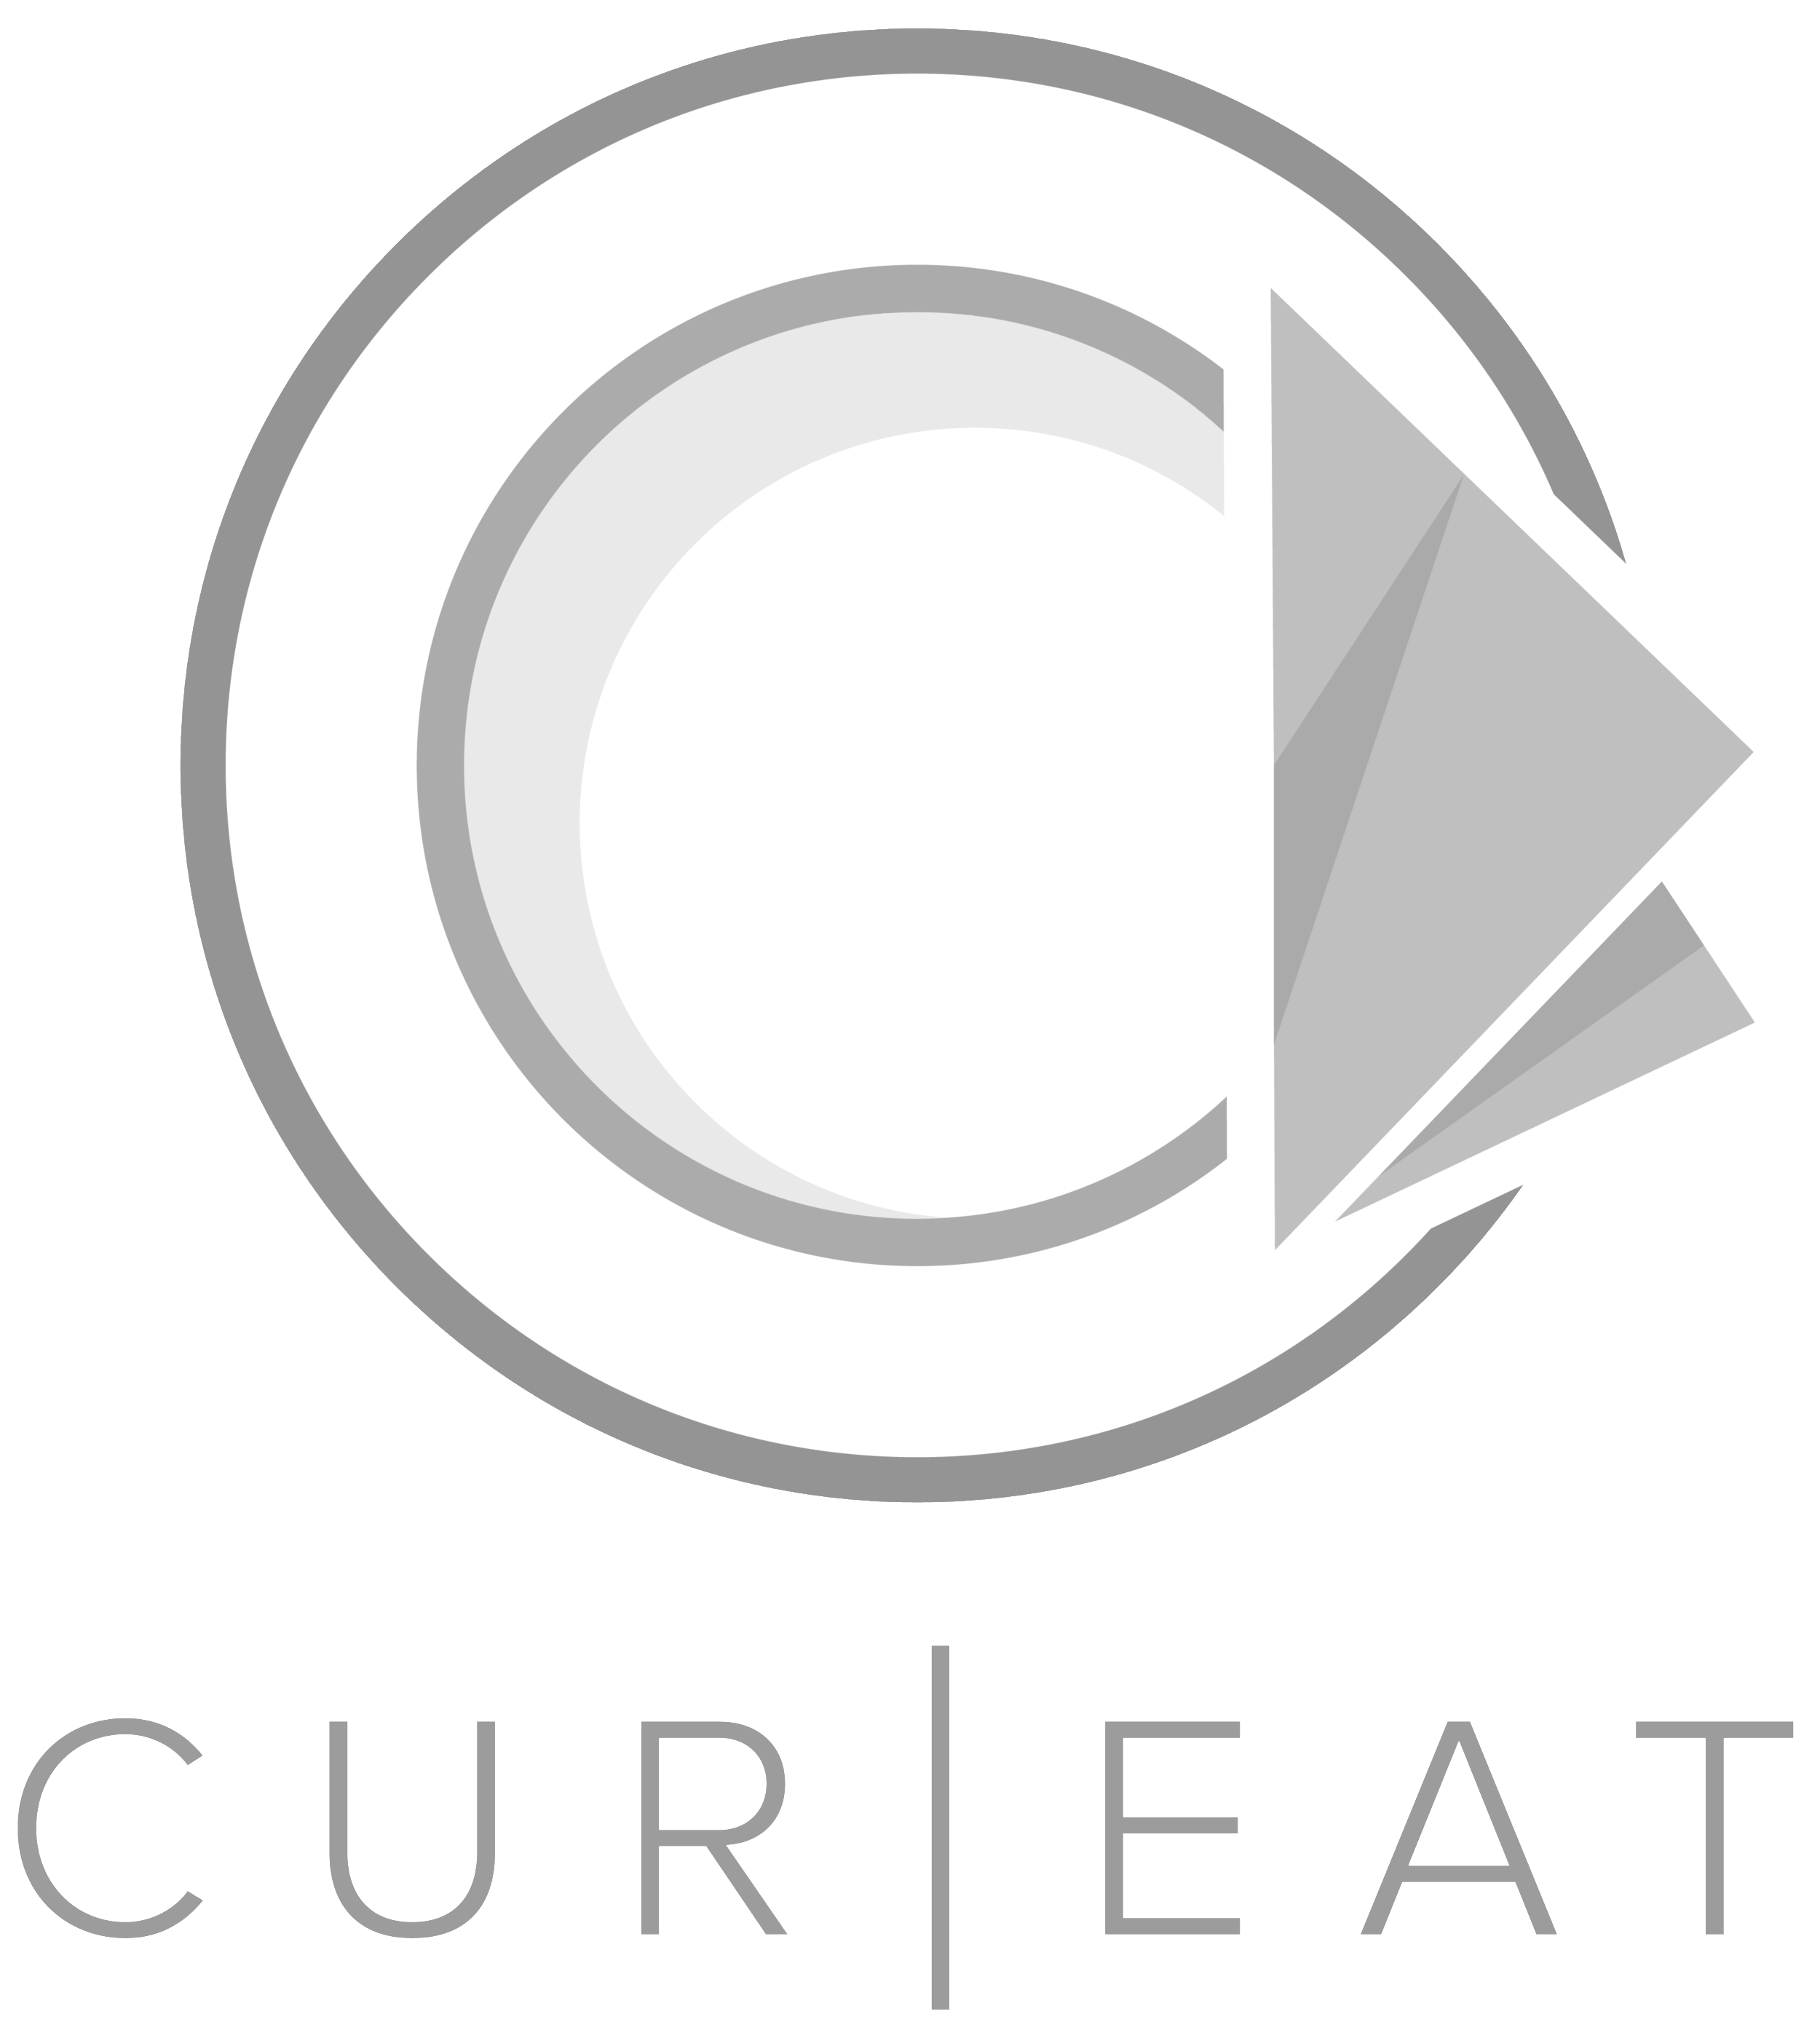 CurEat-gray.png